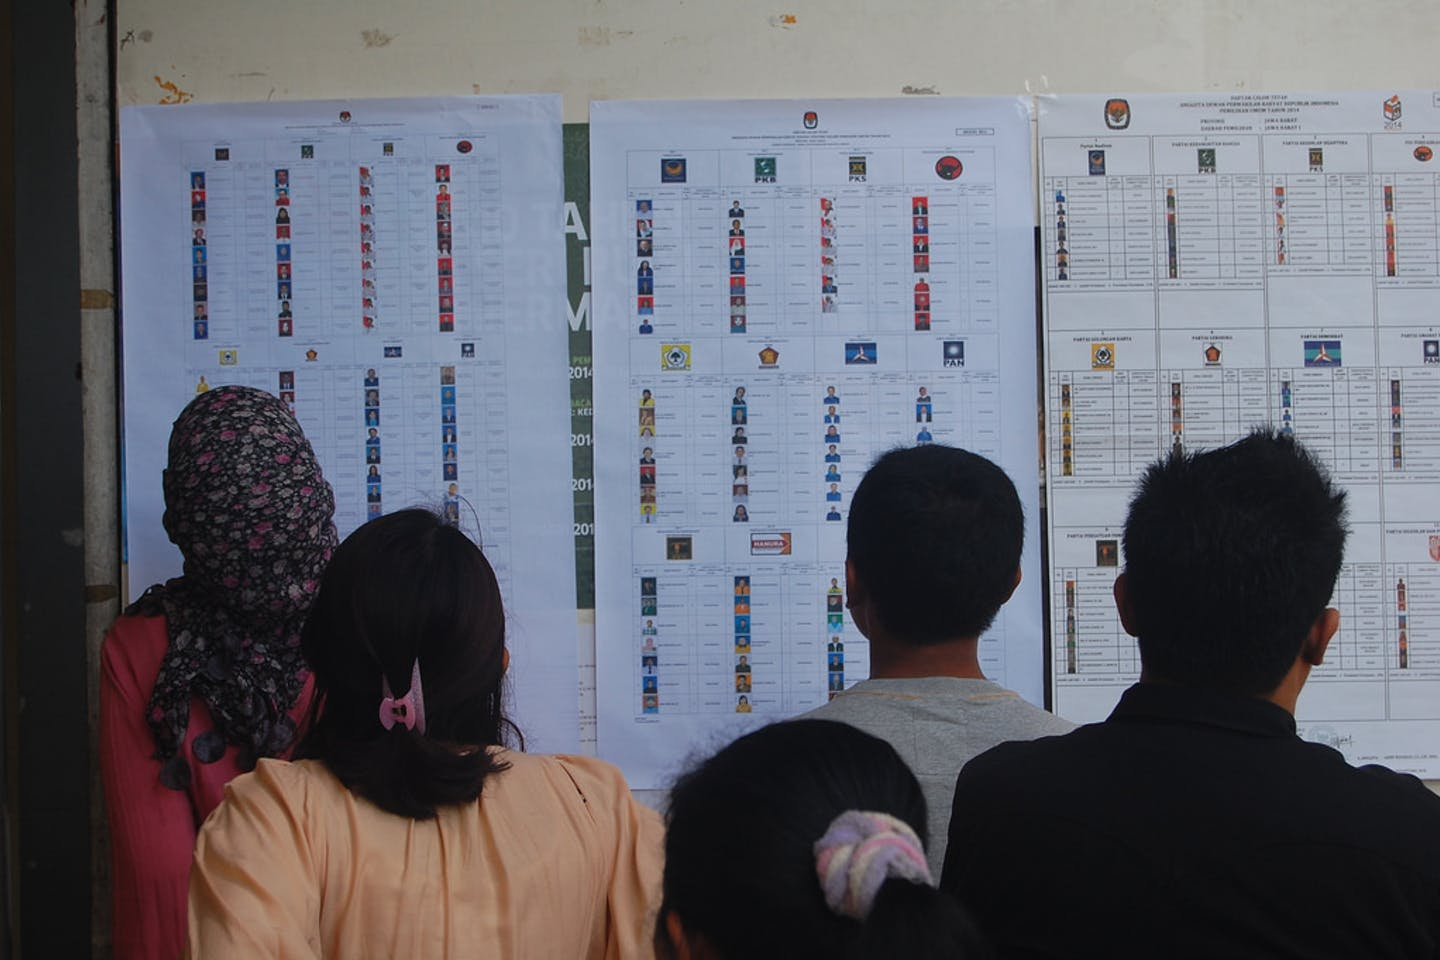 indonesian elections 2014